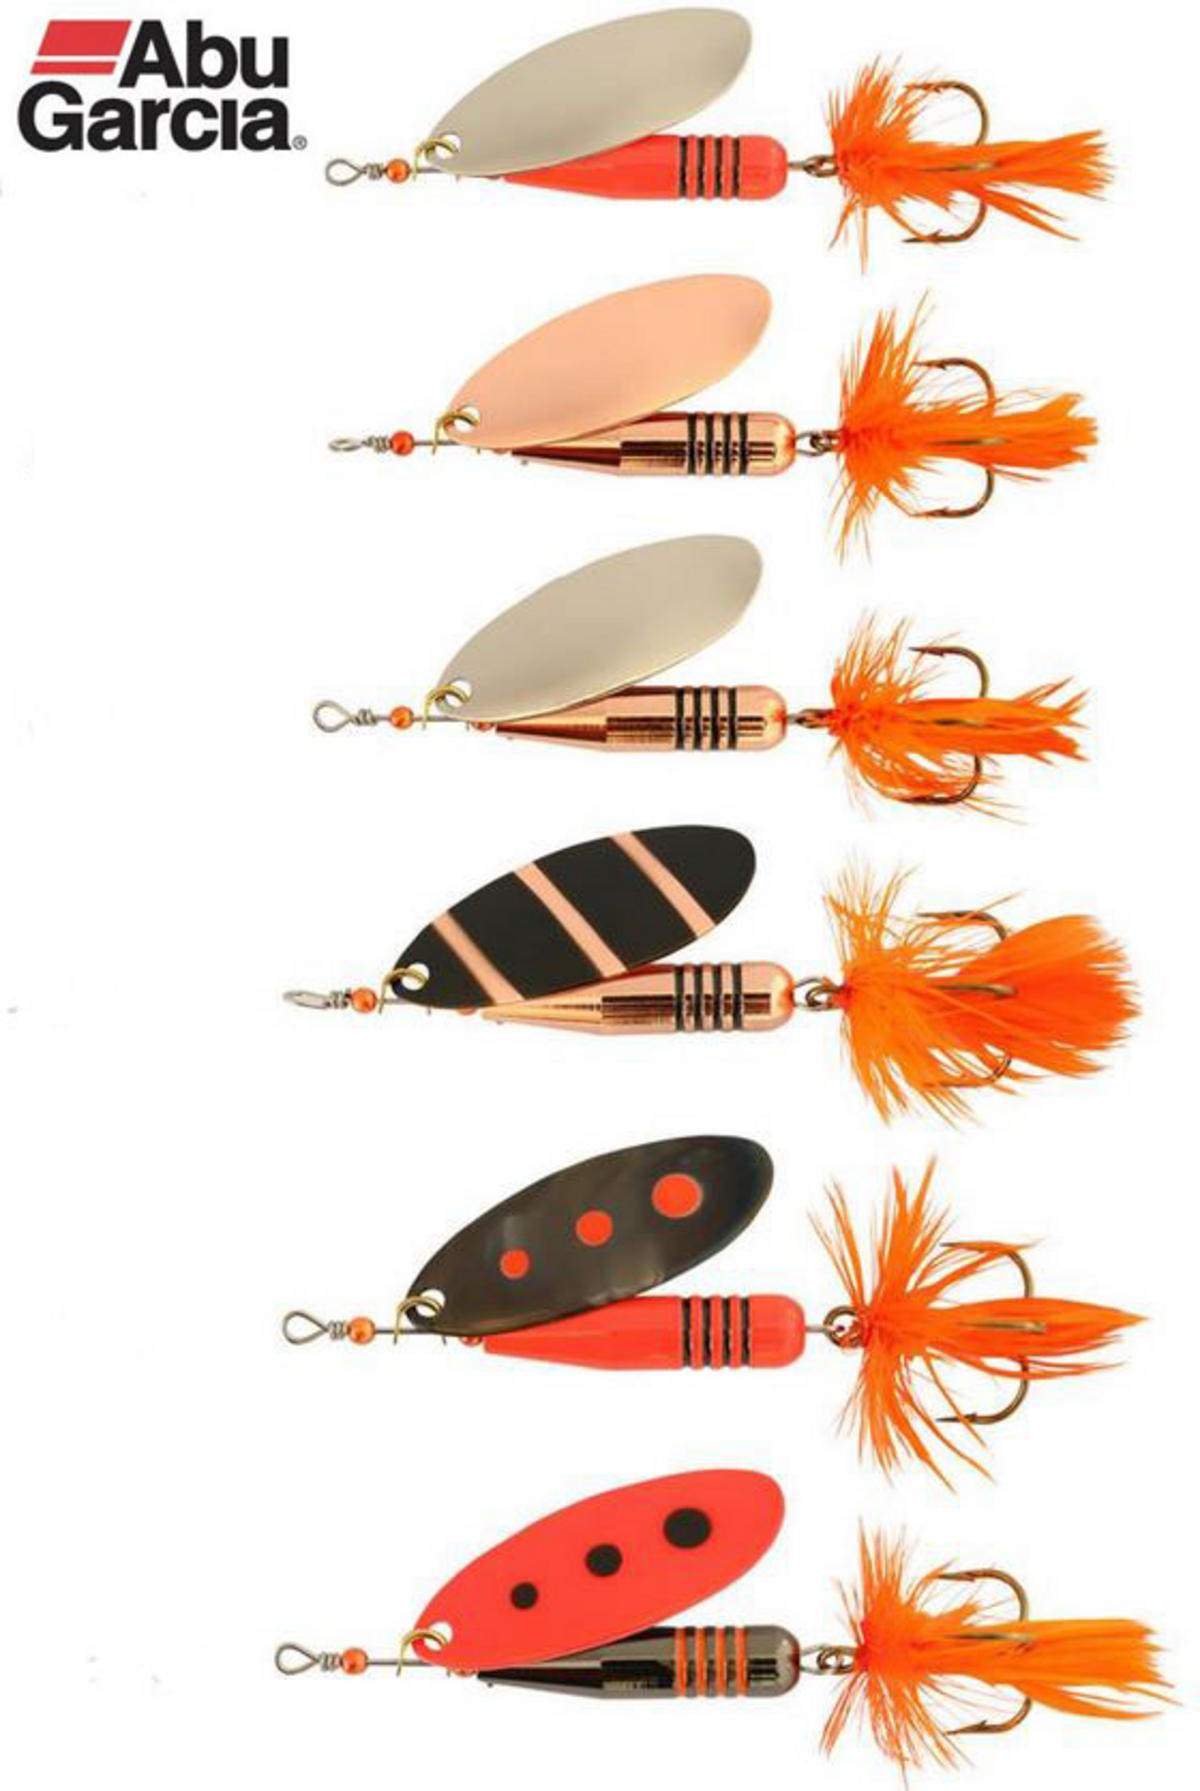 New Abu Garcia Zixten Spinner Lures 7gram - 15gram All Colours